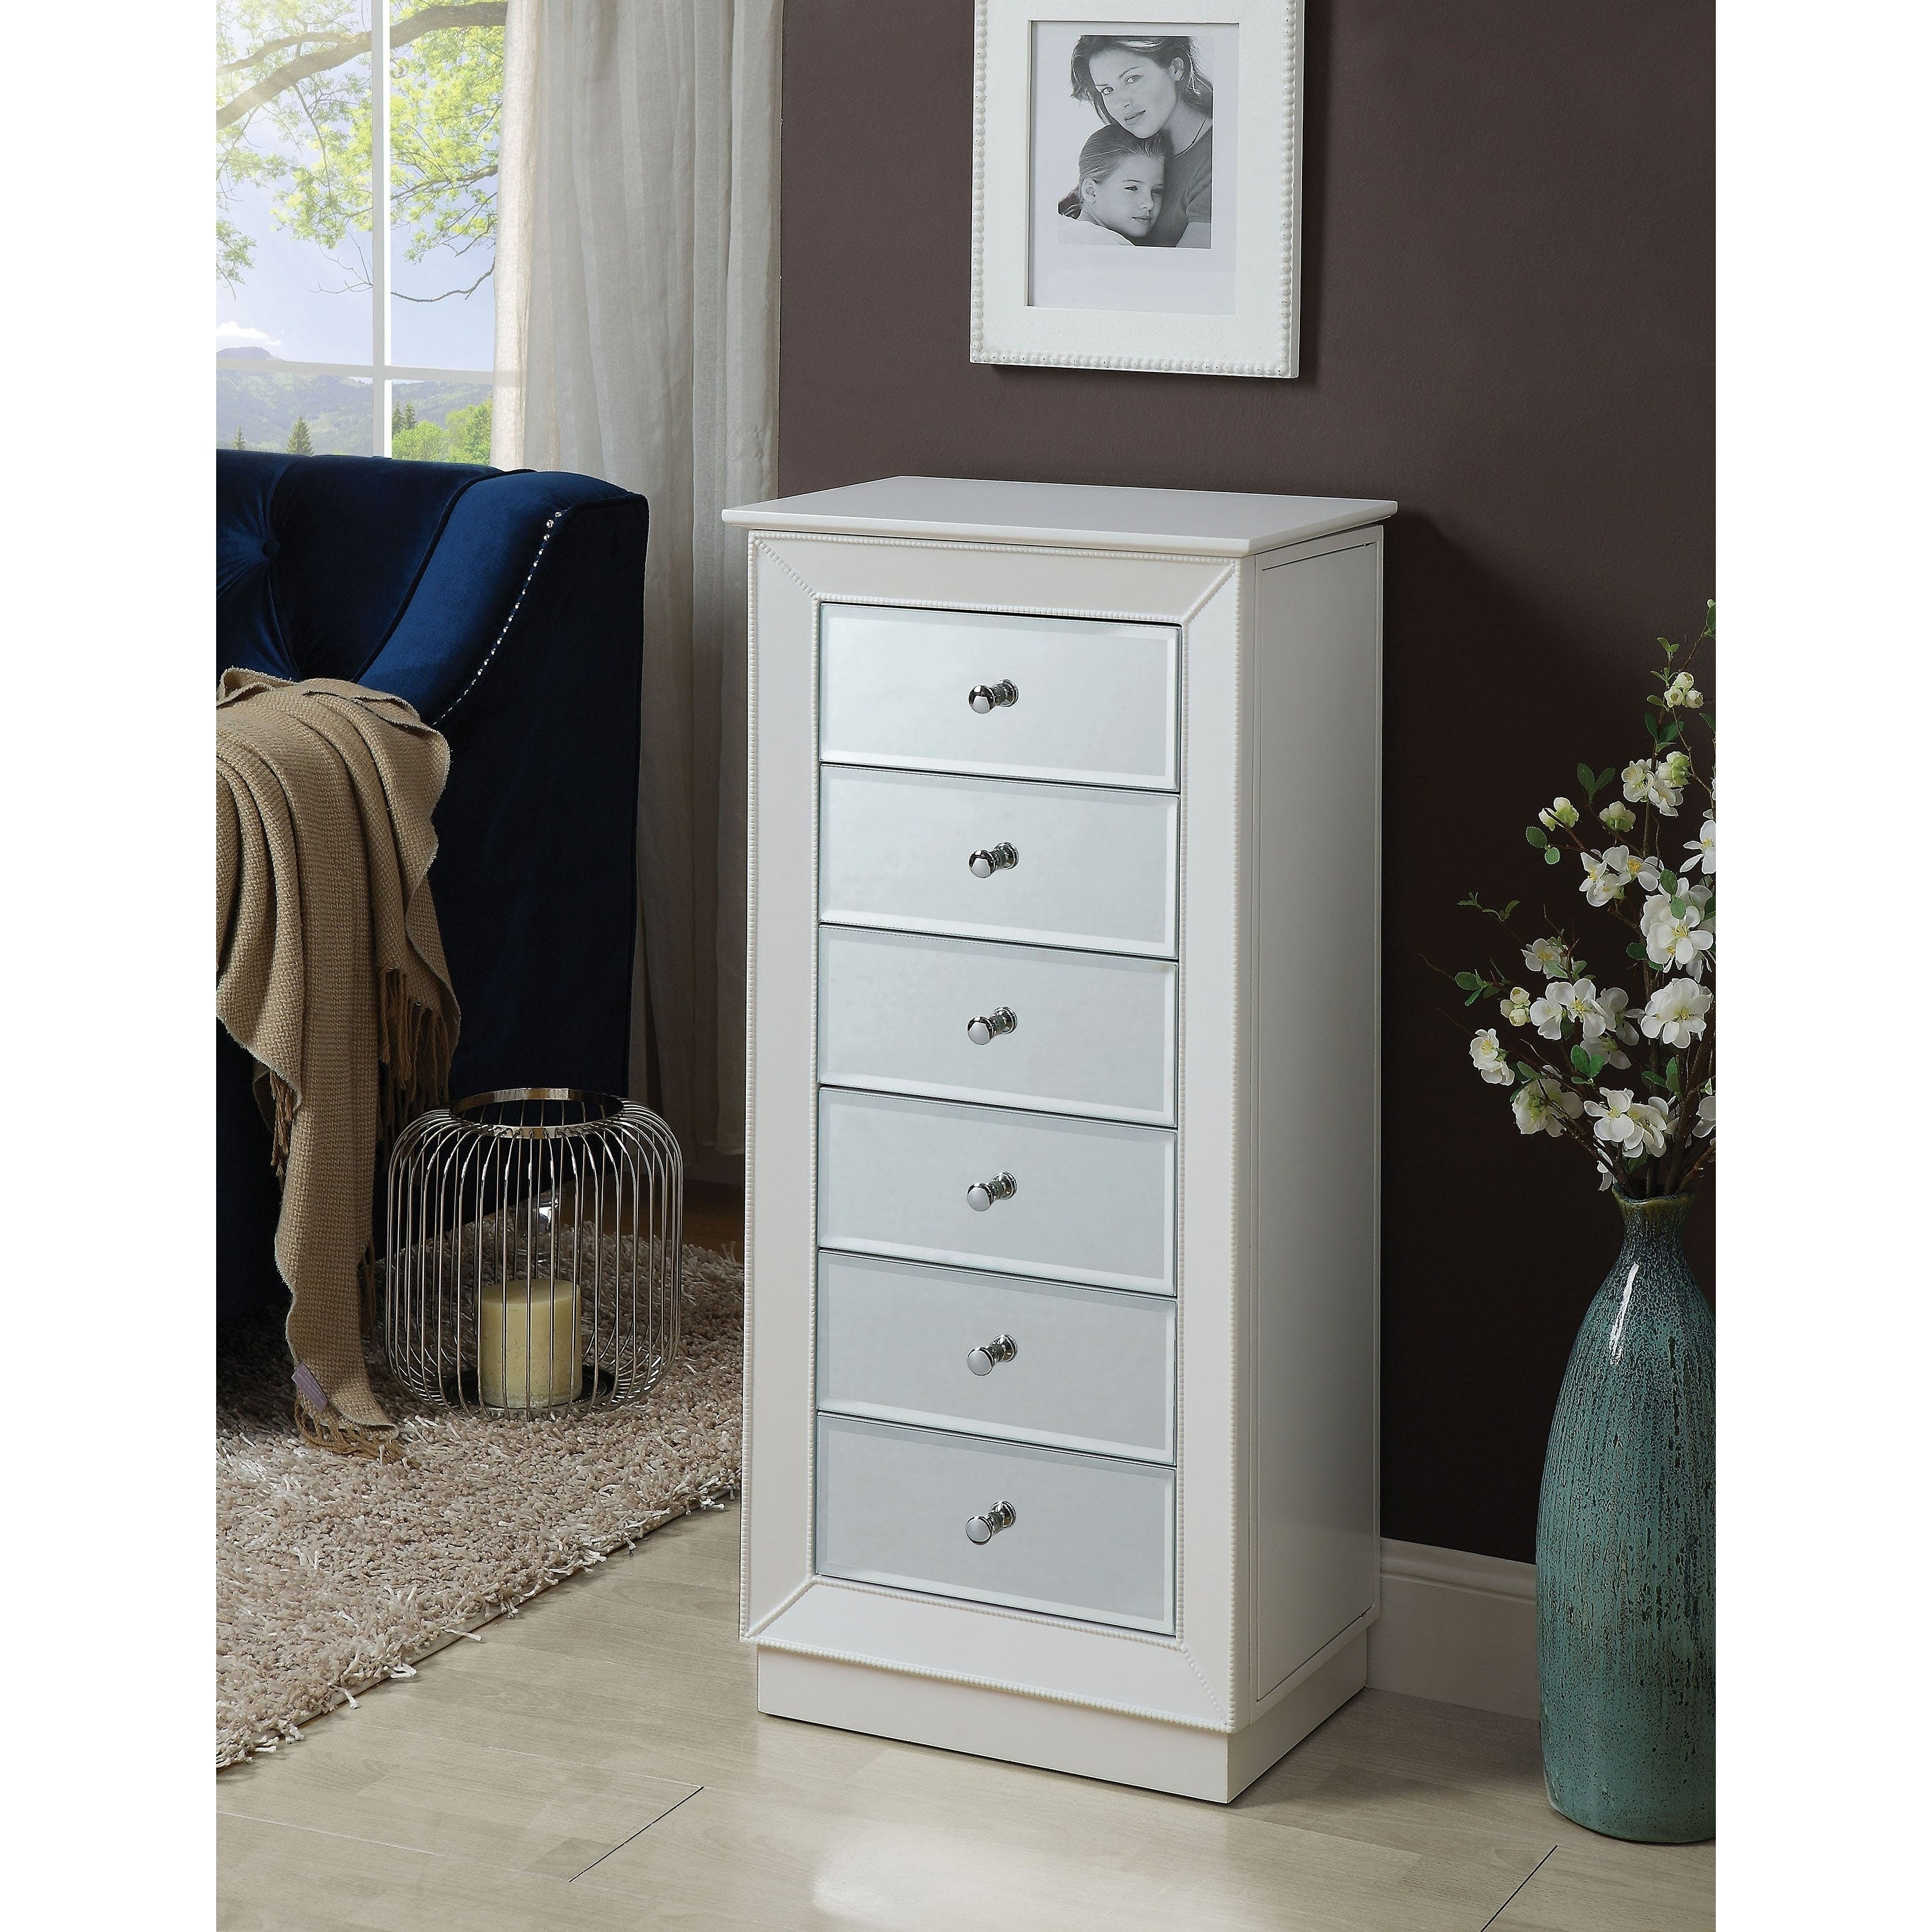 Wood Jewelry Armoire Having 6 Drawers With Mirror Front White